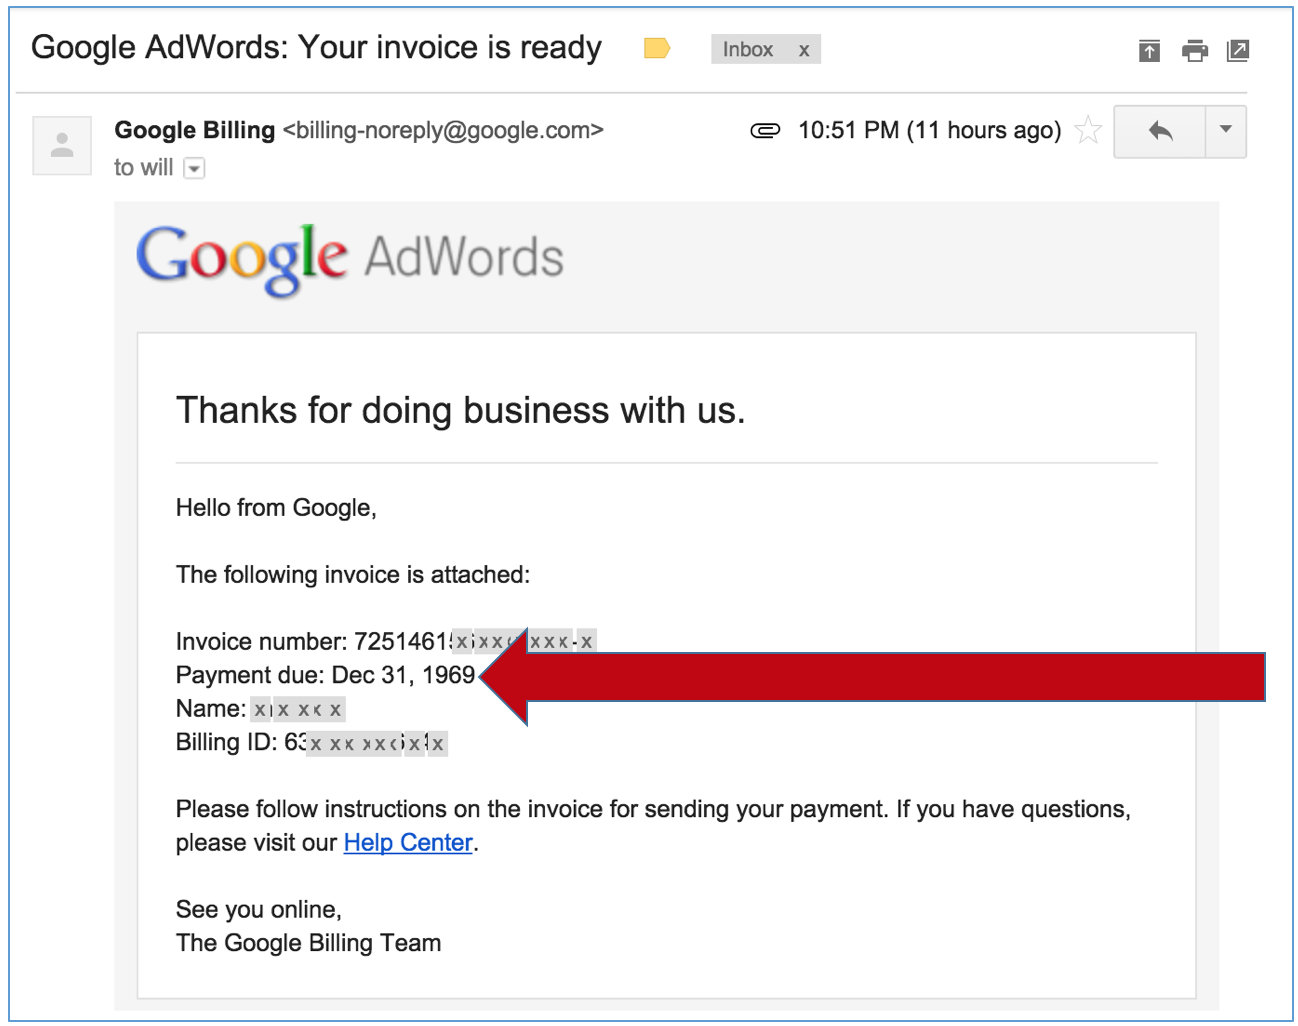 Google AdWords Bug or Mistake